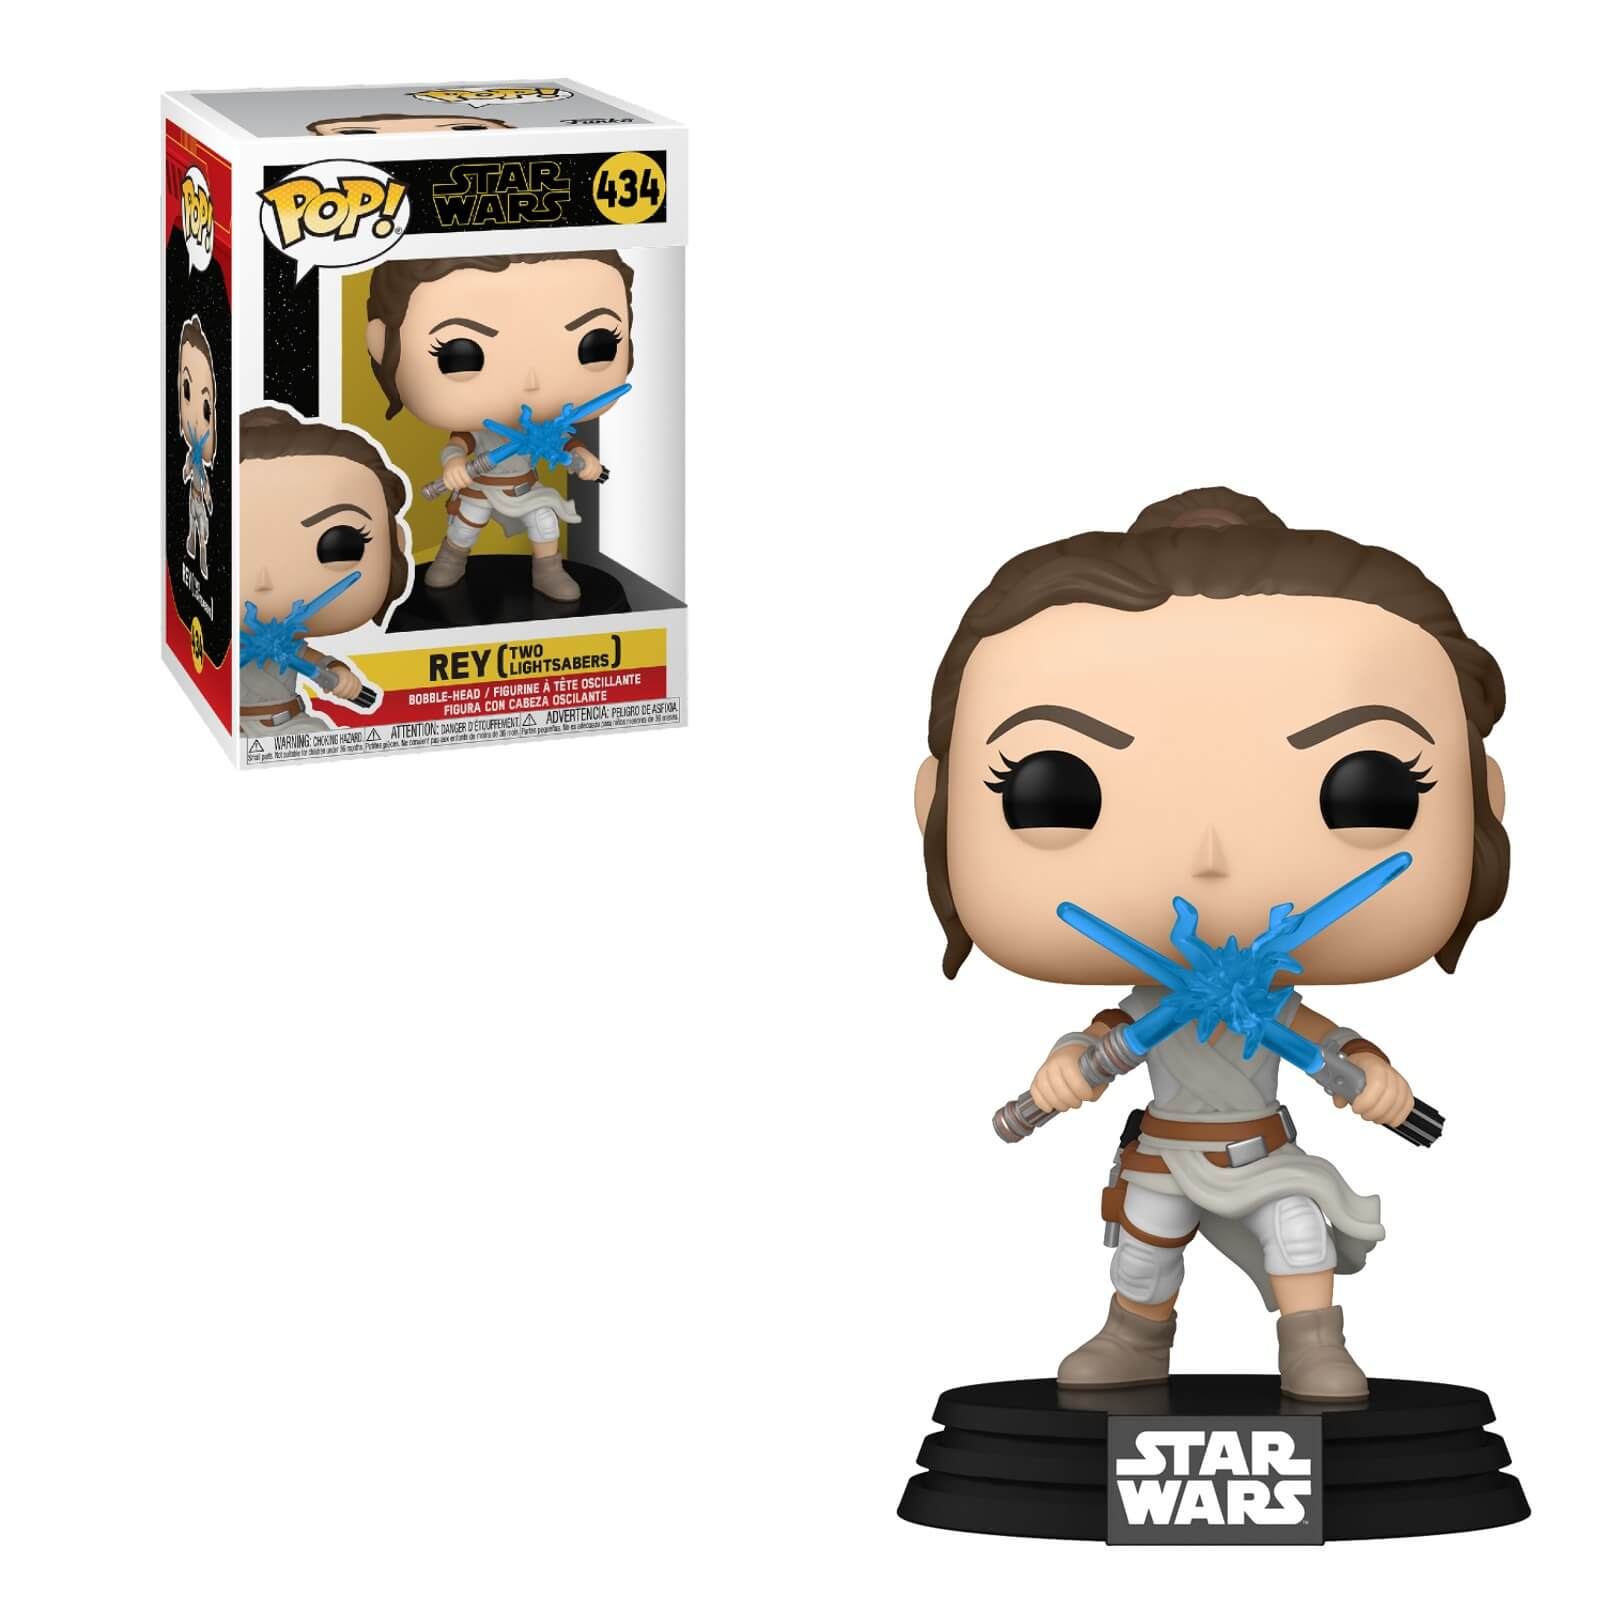 Star Wars The Rise of Skywalker Pop! Vinyl Figure Rey w/ 2 Lightsabers [434] - Fugitive Toys